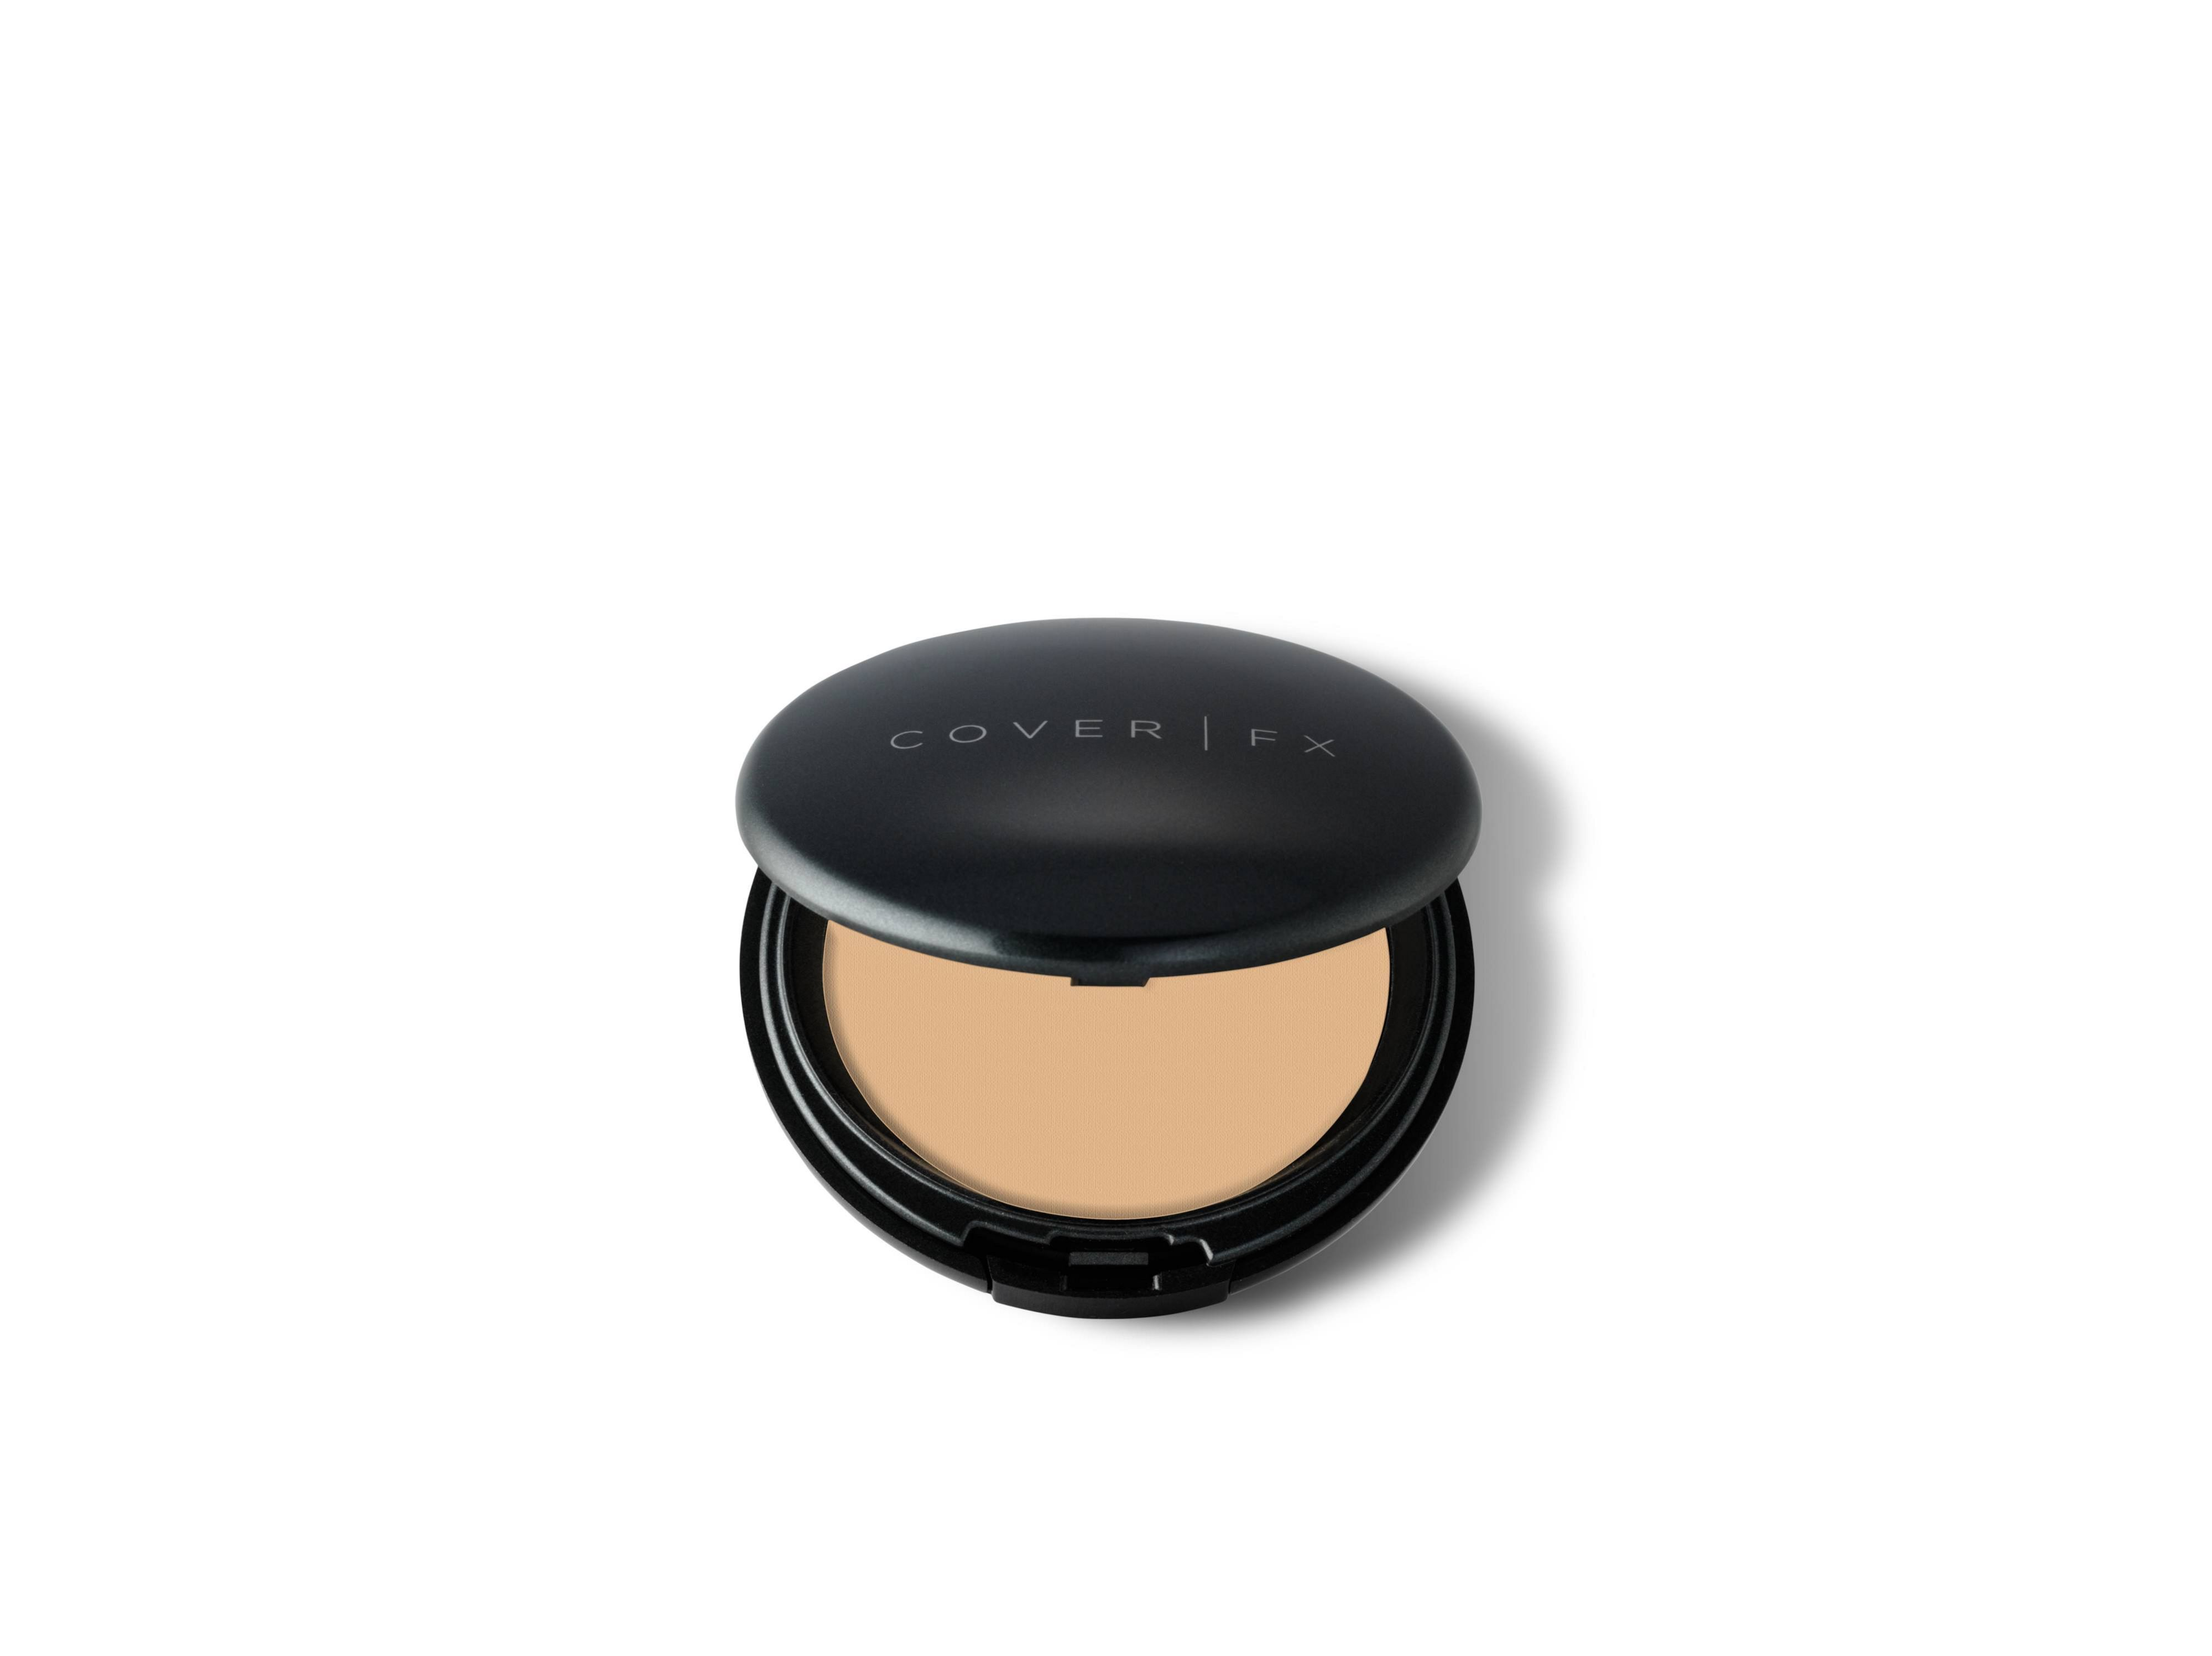 Cover FX Cover FX Pressed Mineral Foundation, G140